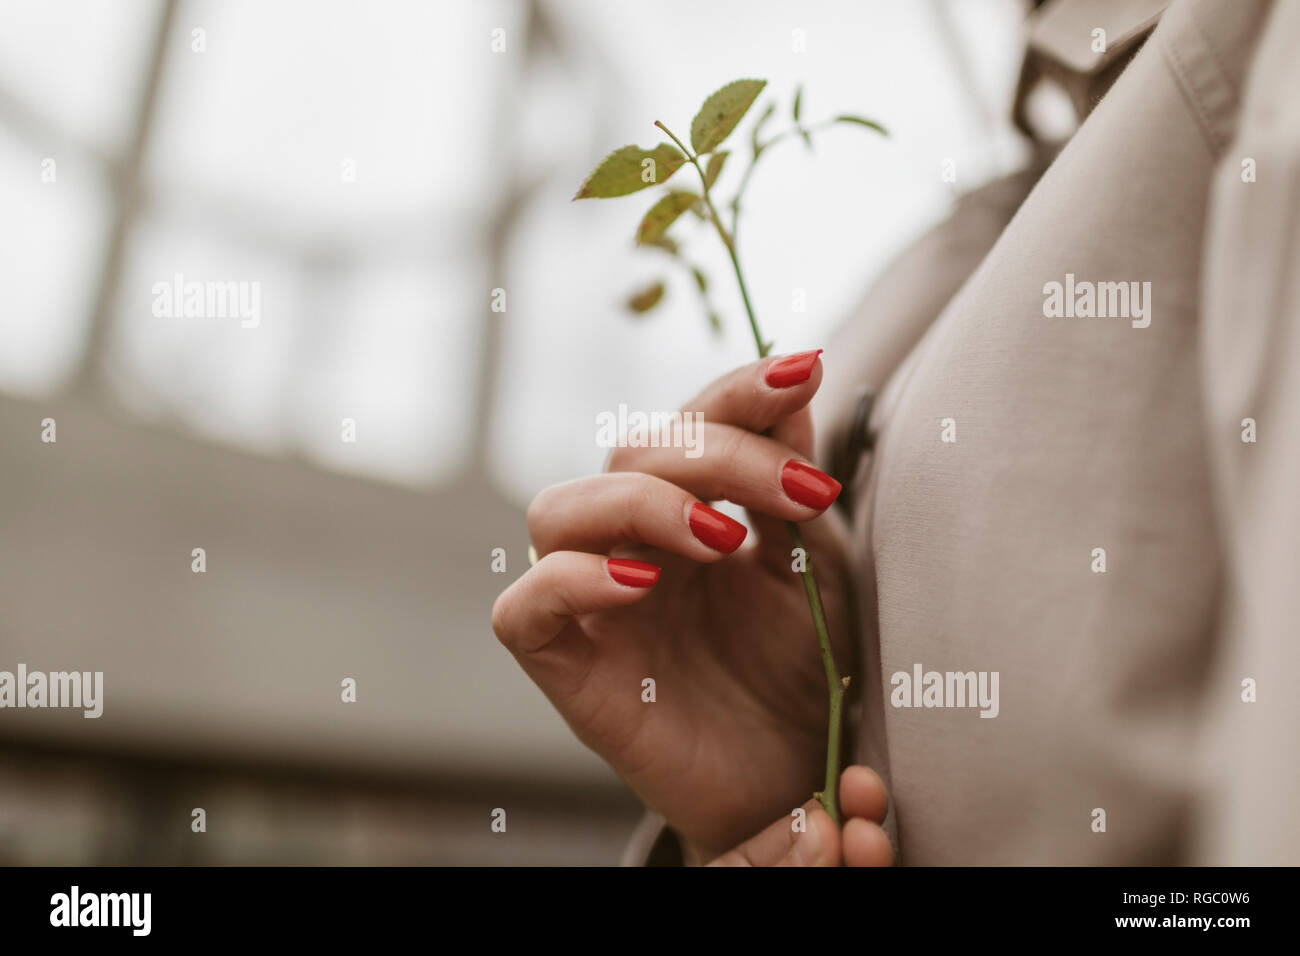 Hands holding twig, close-up - Stock Image